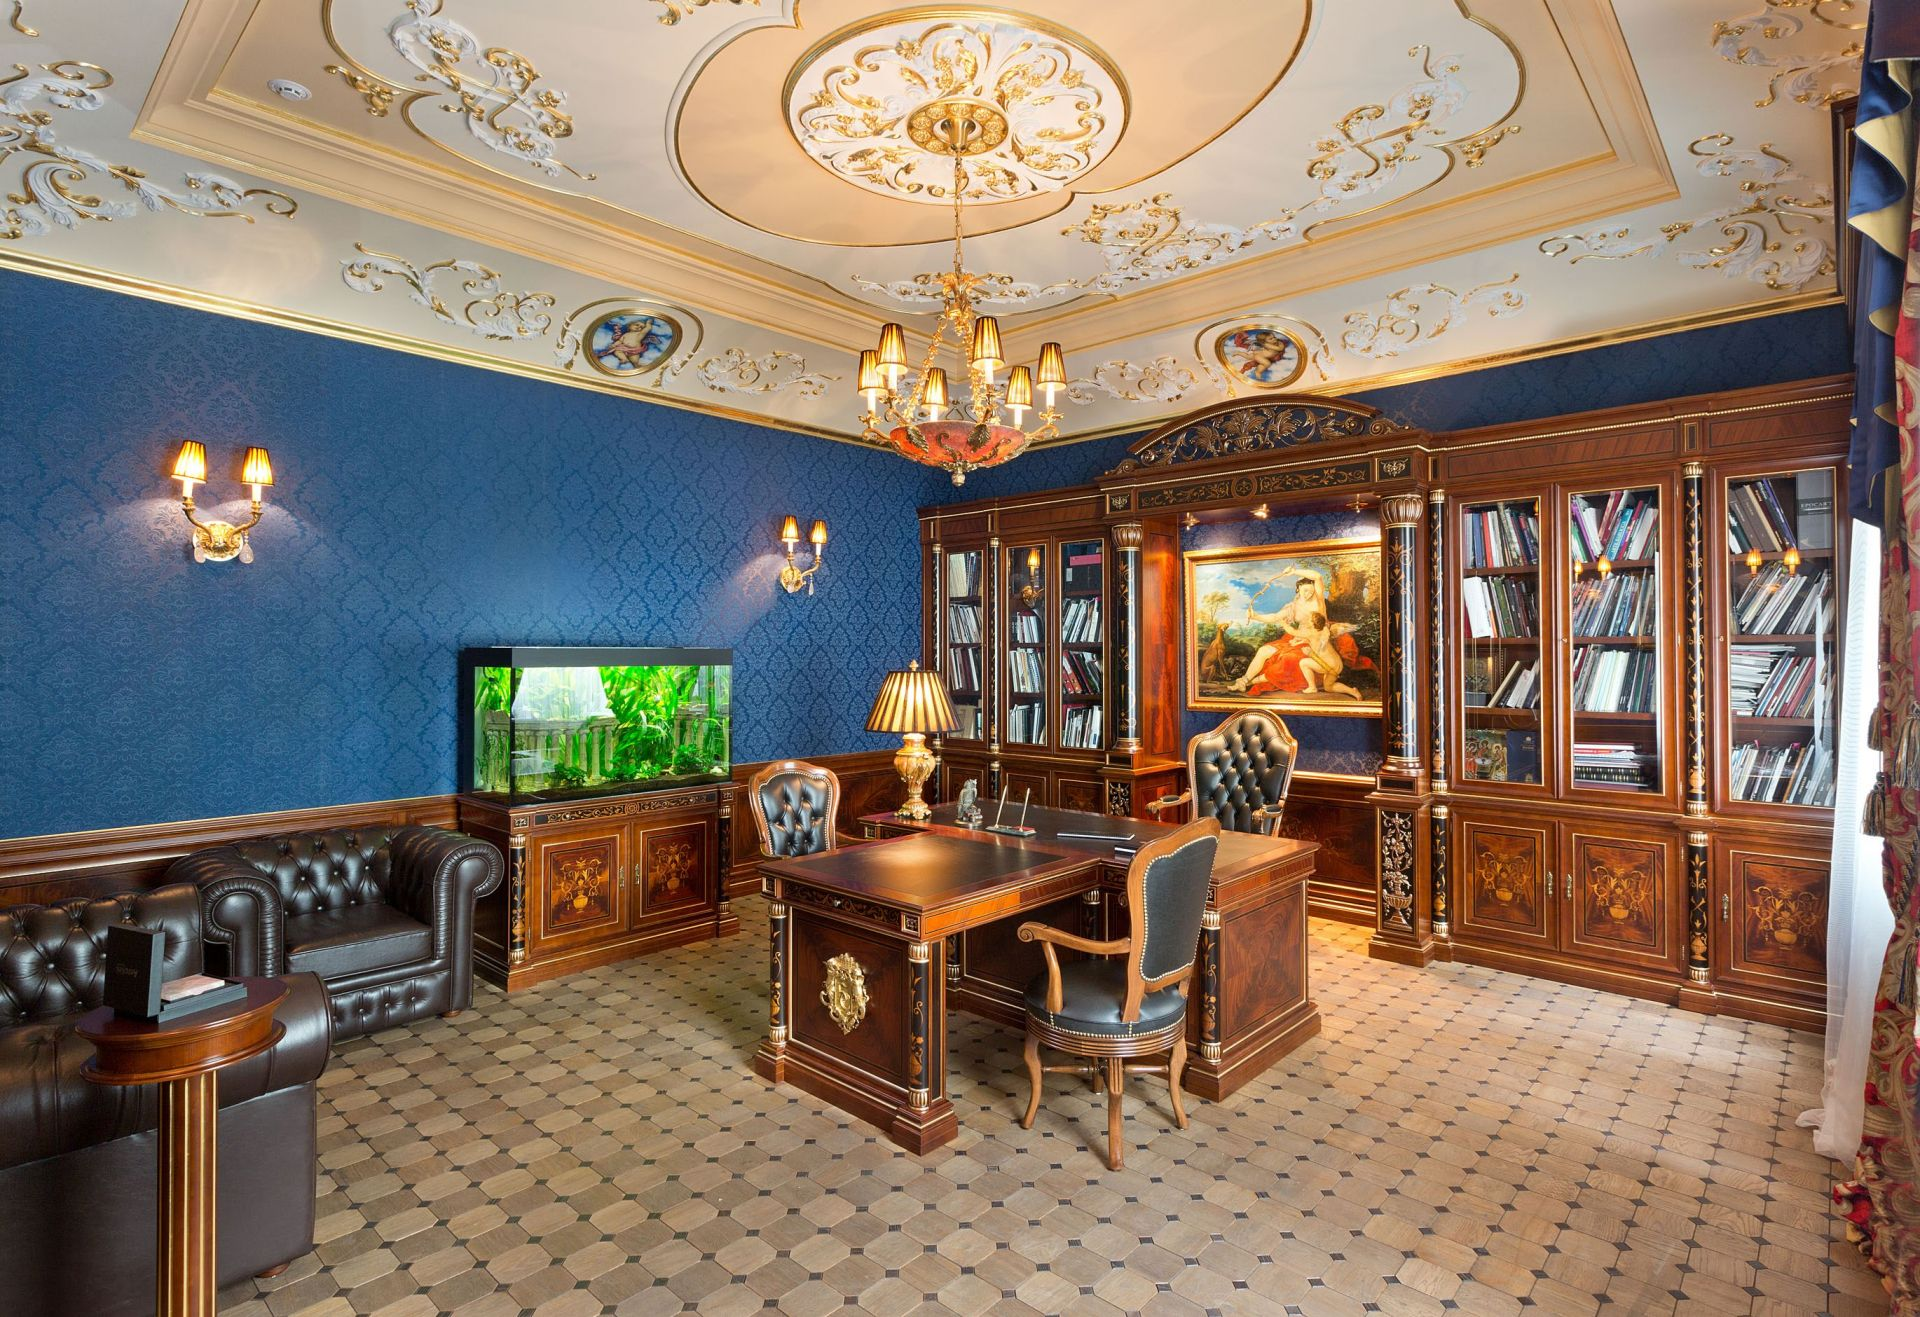 Design, Study interior with baroque elements